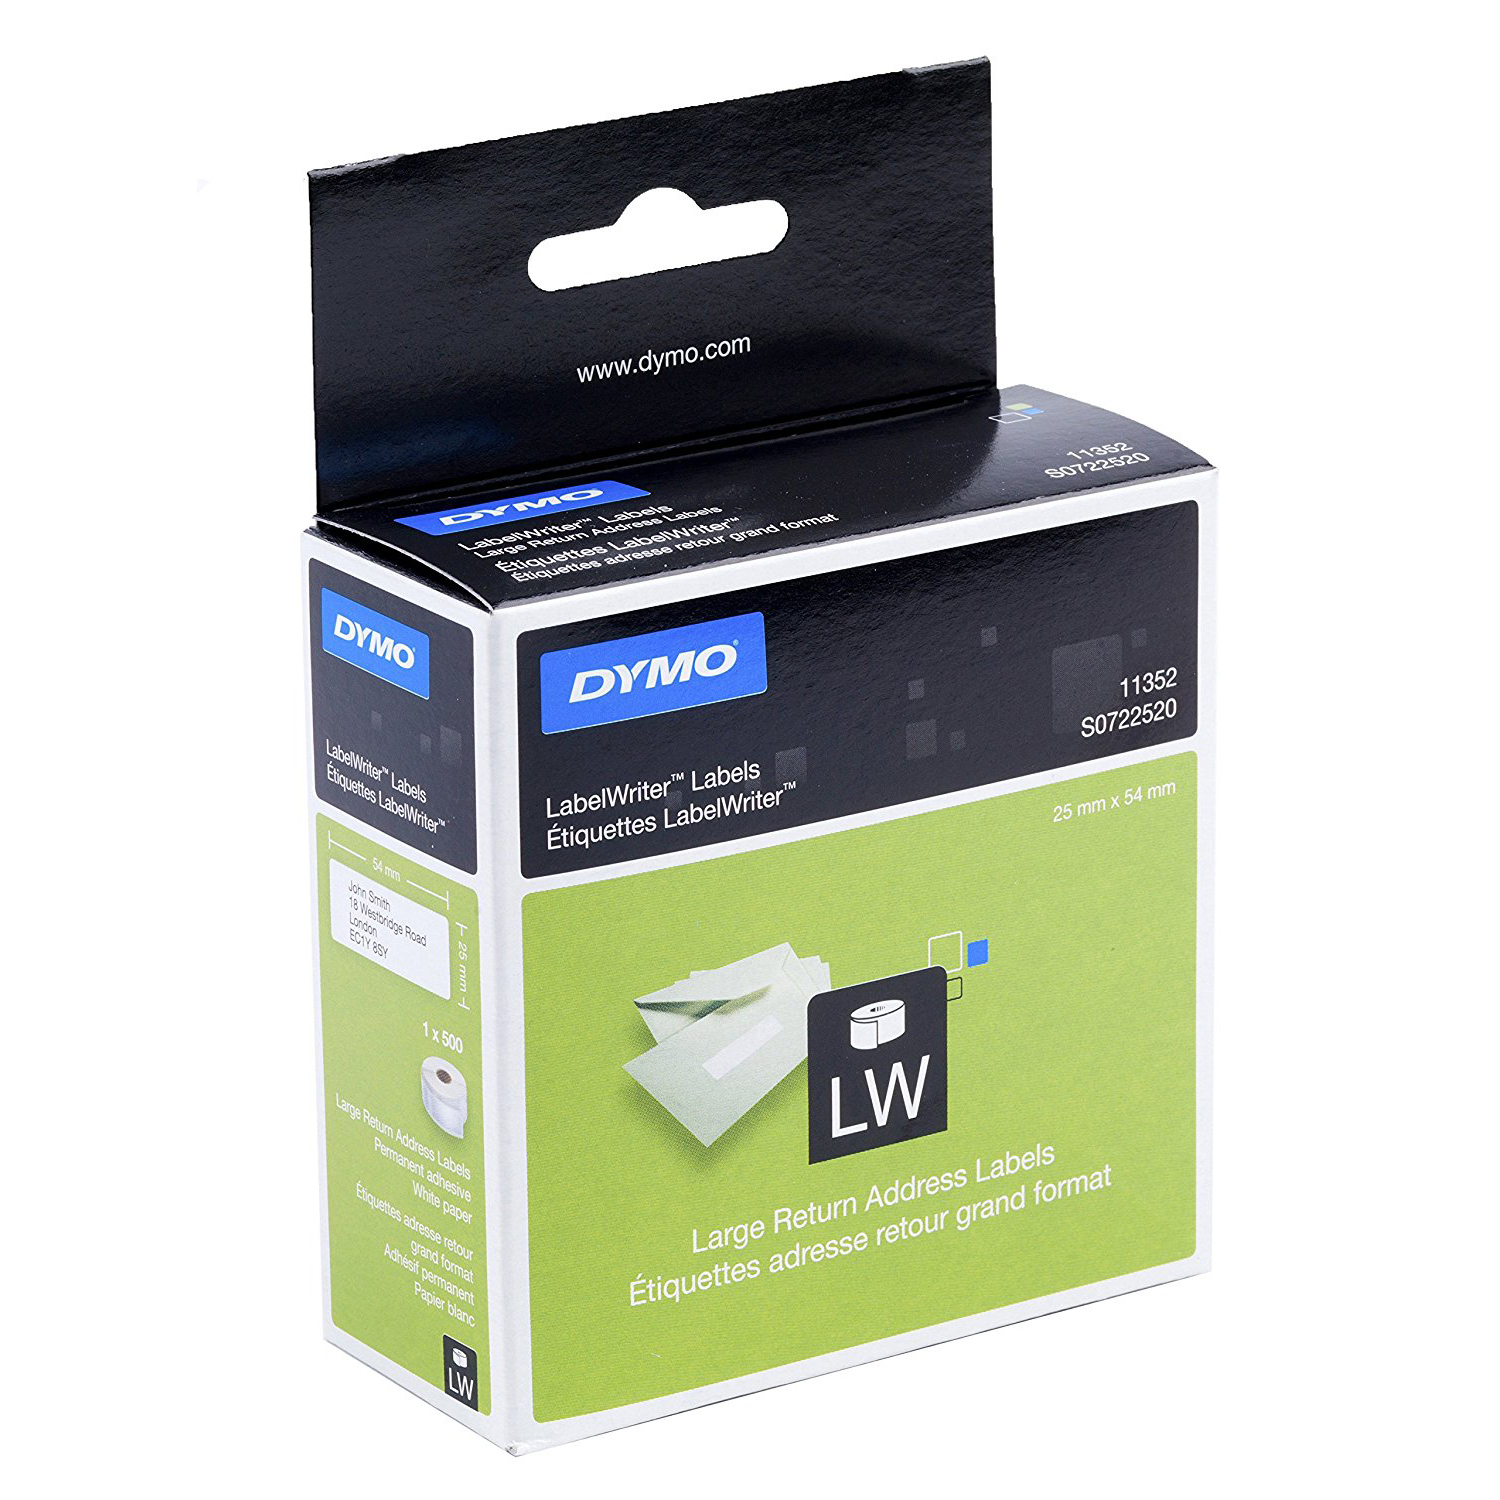 Dymo S0722520 (11352) LabelWriter Large Self-Adhesive Return Address Labels 54mm x 25 mm Roll of 500 - Black Print on White (roll)